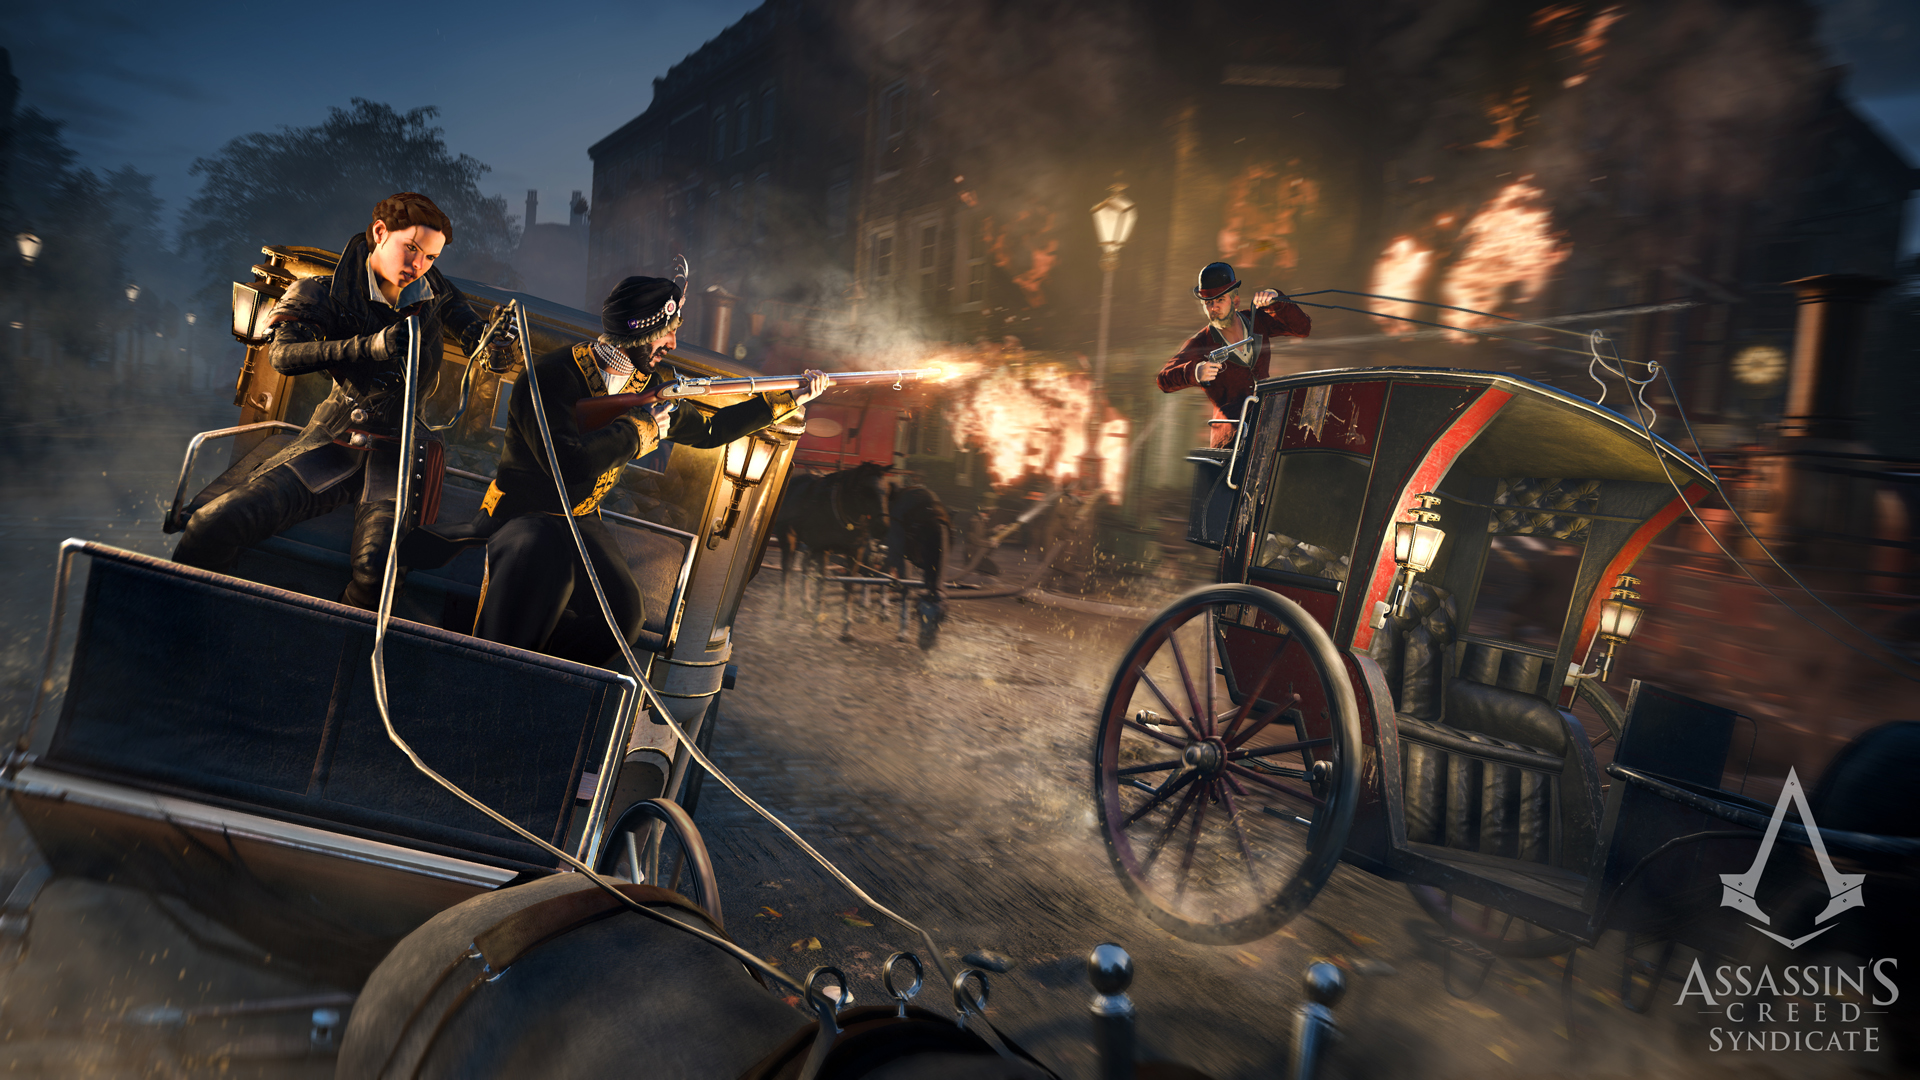 Assassin's Creed Syndicate L'ultimo Maharaja Carriage Chase